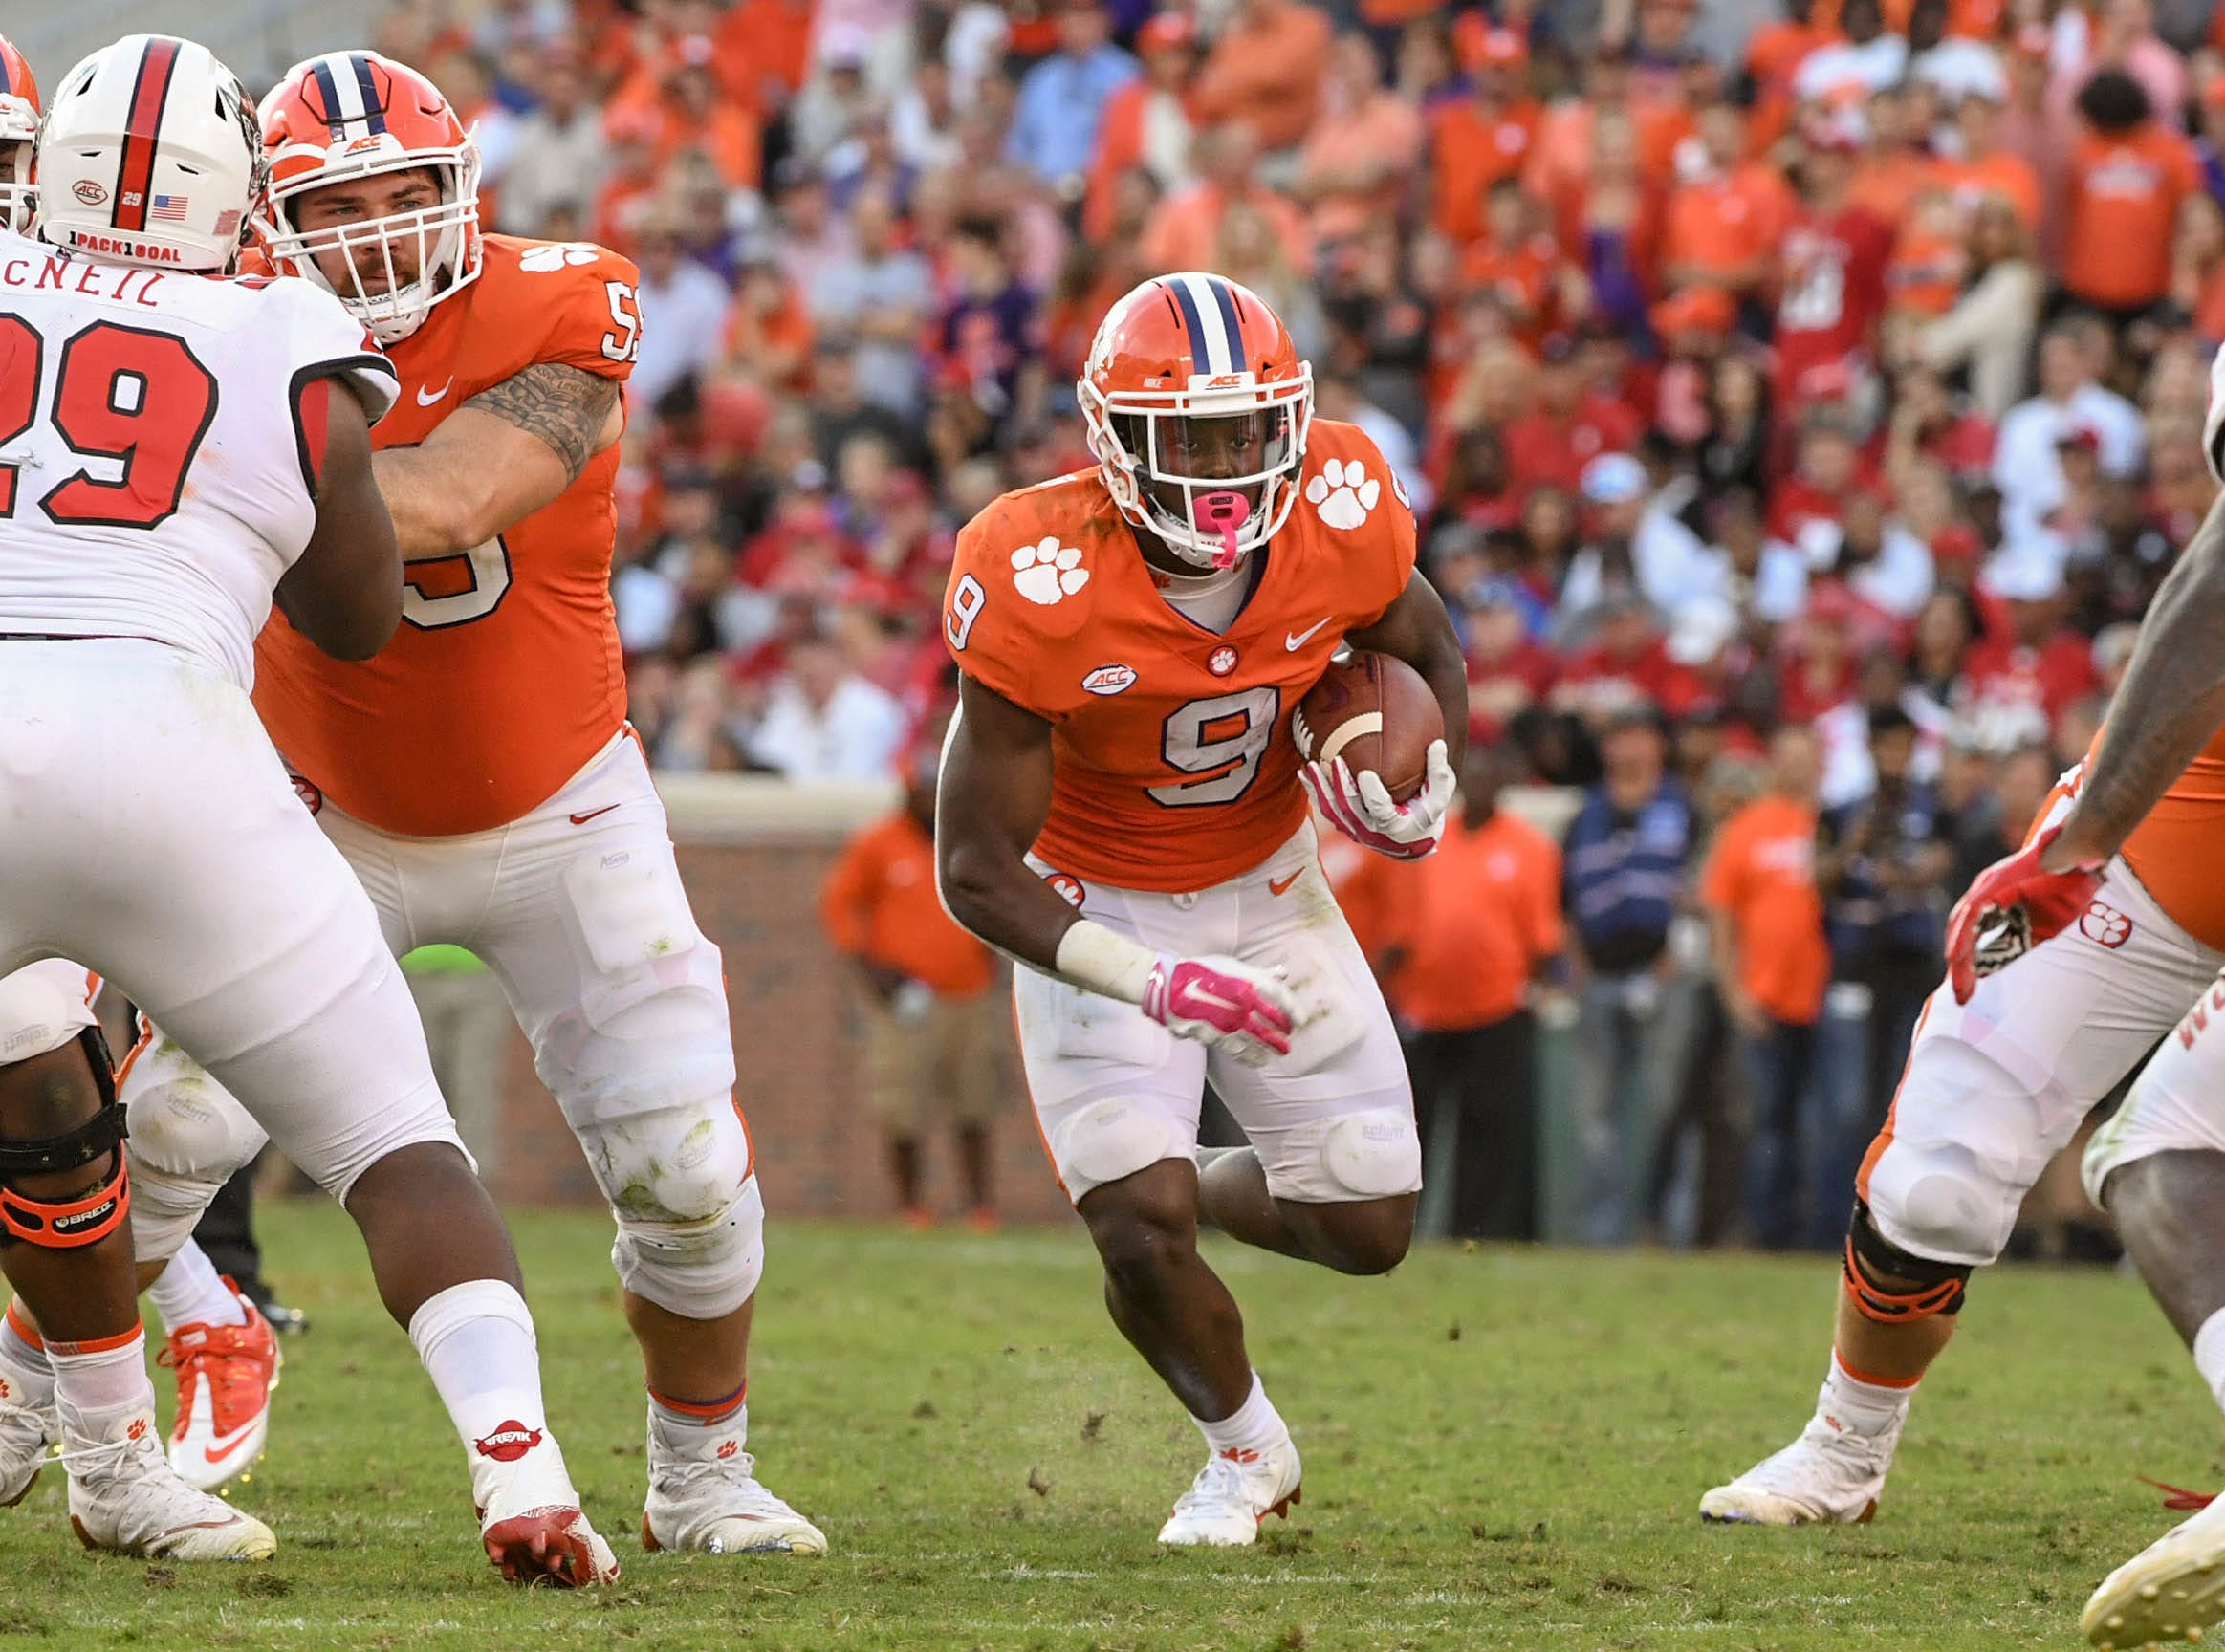 Clemson running back Travis Etienne (9) runs end a series with NC State during the first quarter in Memorial Stadium on Saturday, October 20, 2018.